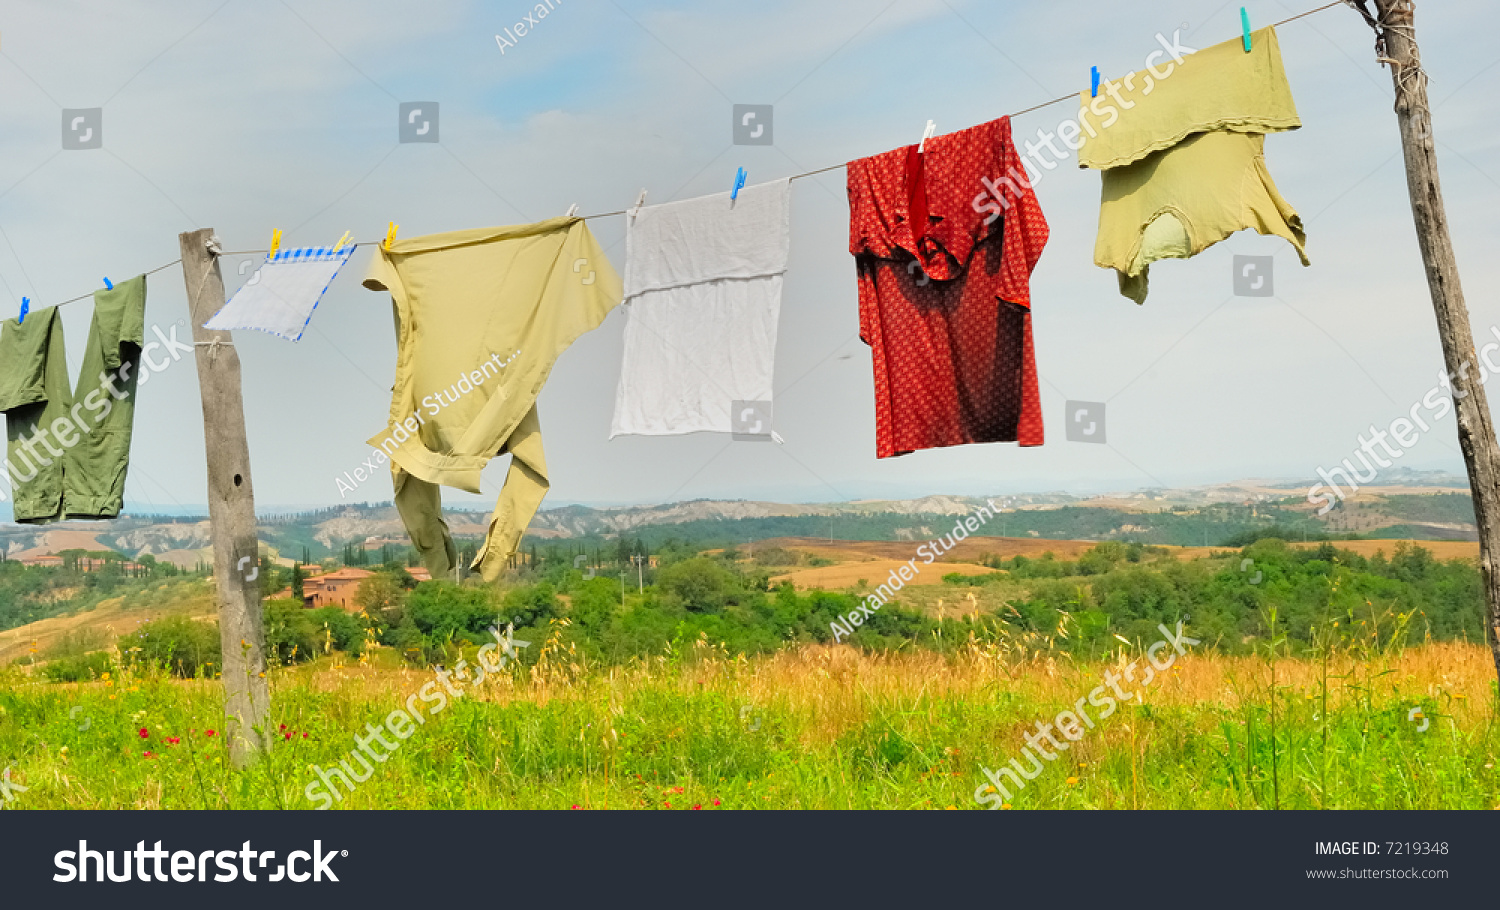 Clothes Drying On A Clothesline ~ Clothes for drying on a clothesline stock photo